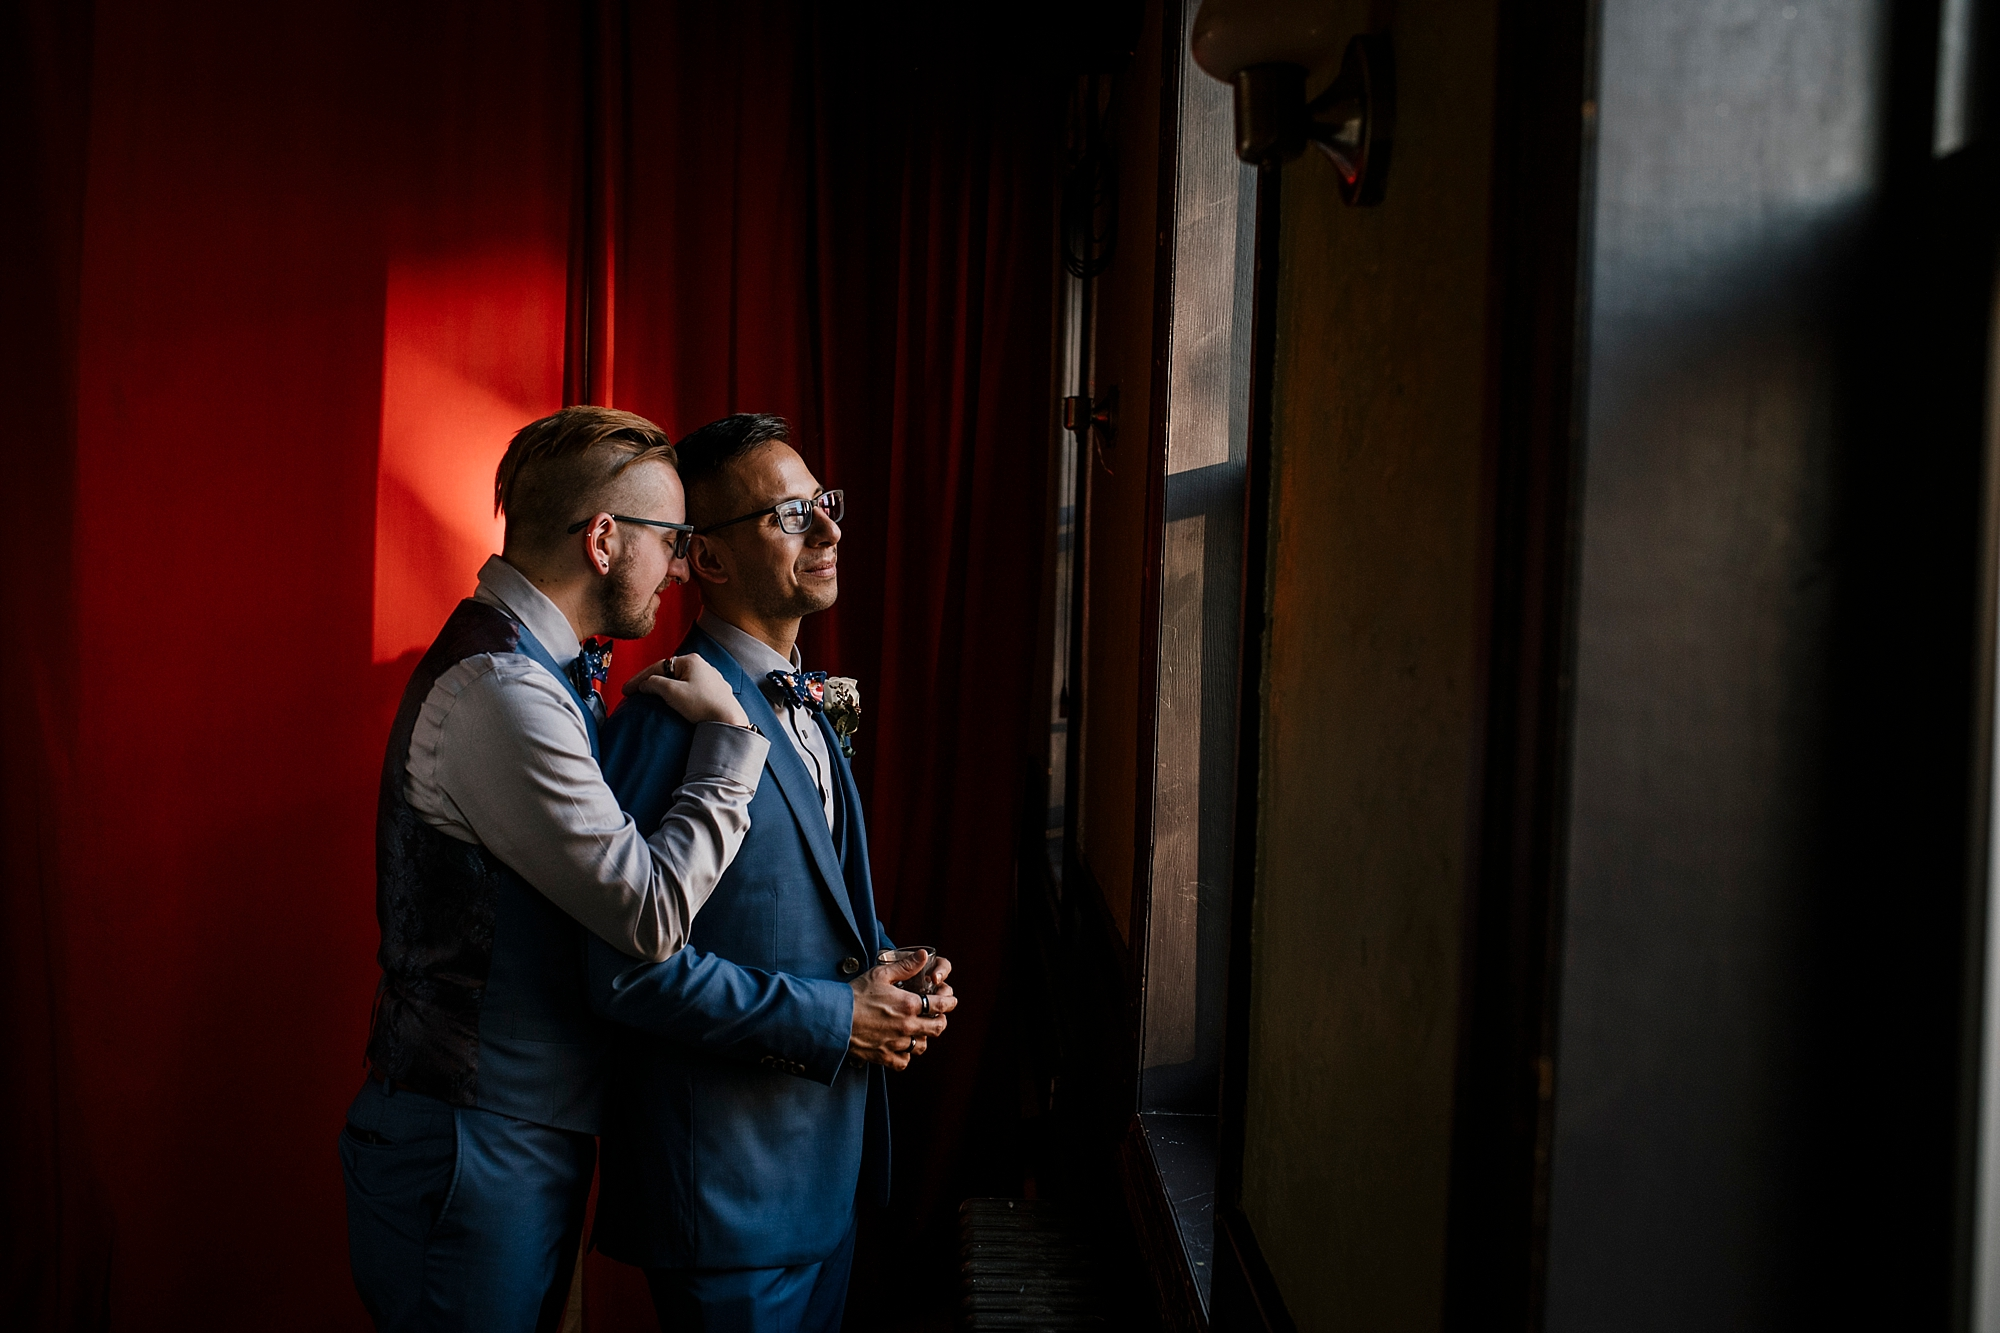 Joe_Mac_Creative_Philadelphia_Philly_LGBT_Gay_Engagement_Wedding_Photography__0145.jpg